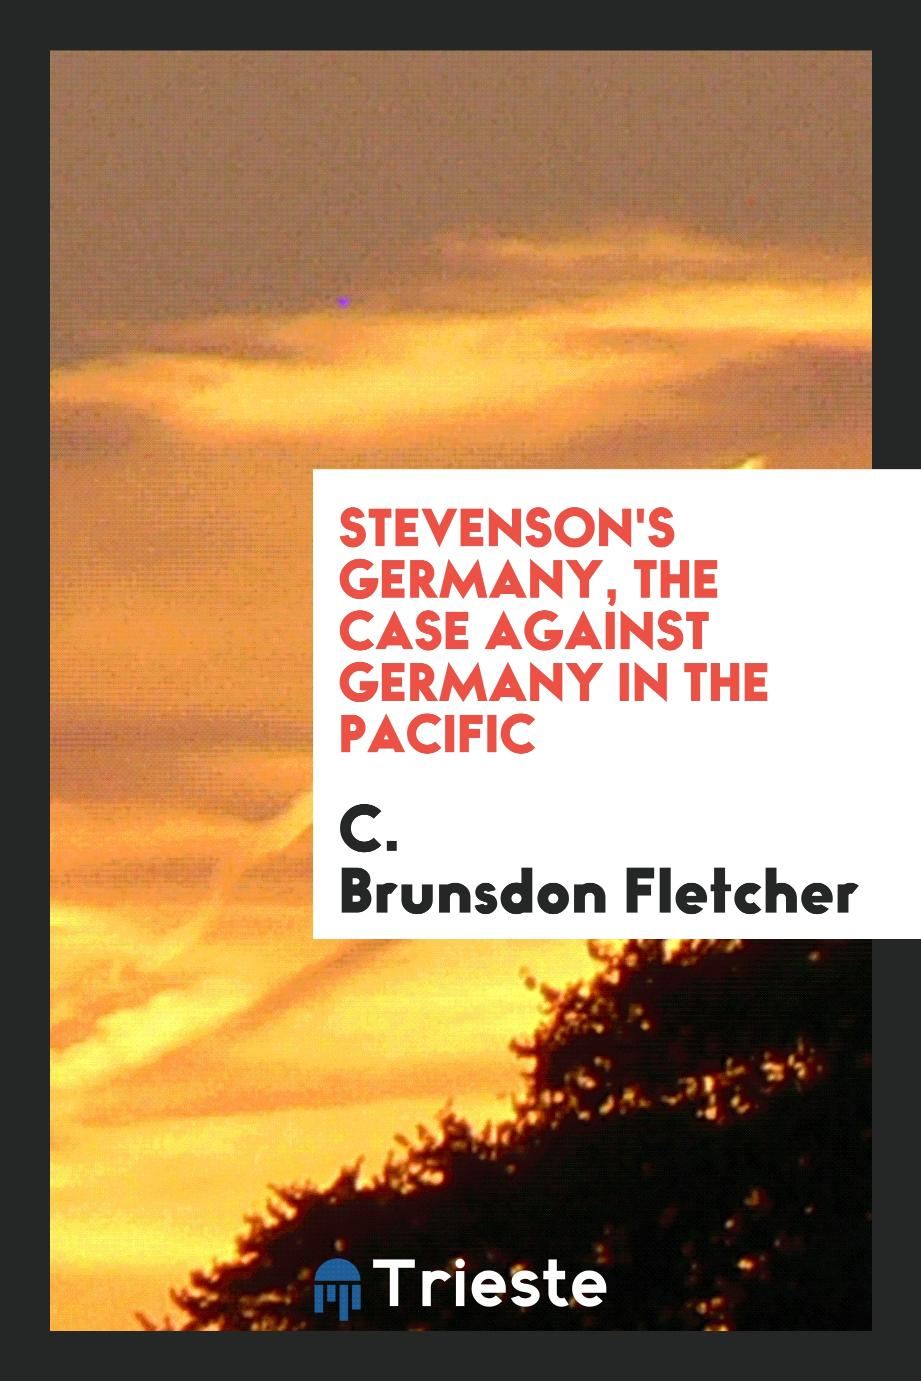 Stevenson's Germany, the case against Germany in the Pacific